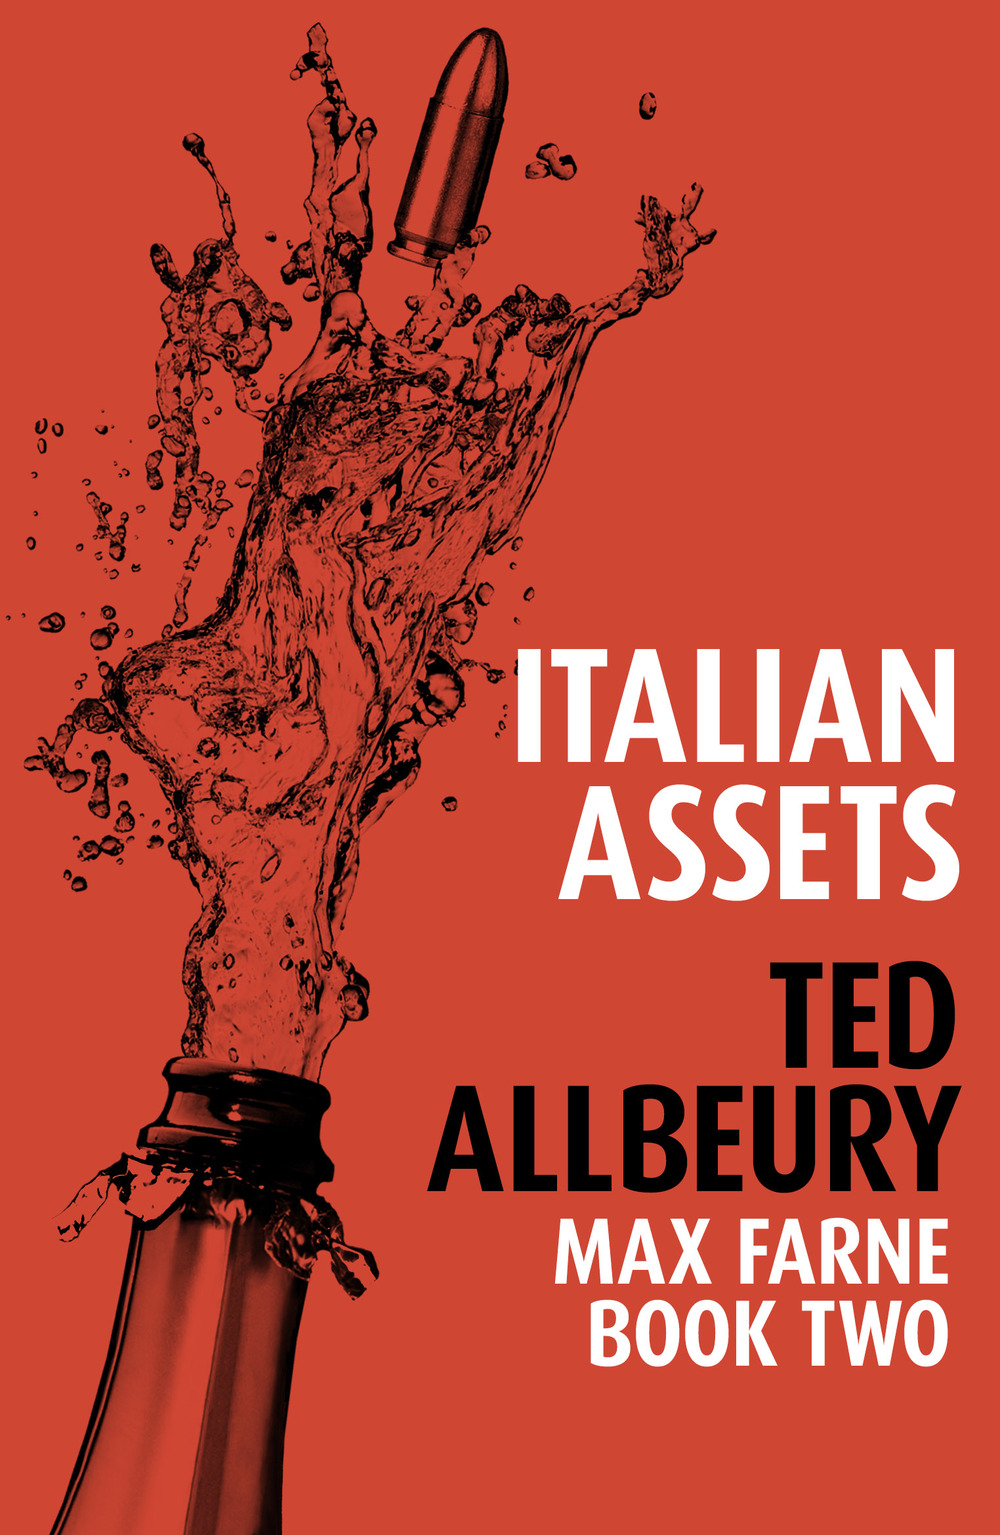 ITALIAN ASSETS Thriller, 164 pages, Mulholland 2014. Abducted and blackmailed into selling his boat by a smooth Italian gangster, Max Farne is drawn into a wave of crime sweeping Italy, taking him back to the mountains to protect the beautiful daughter of a wartime friend.